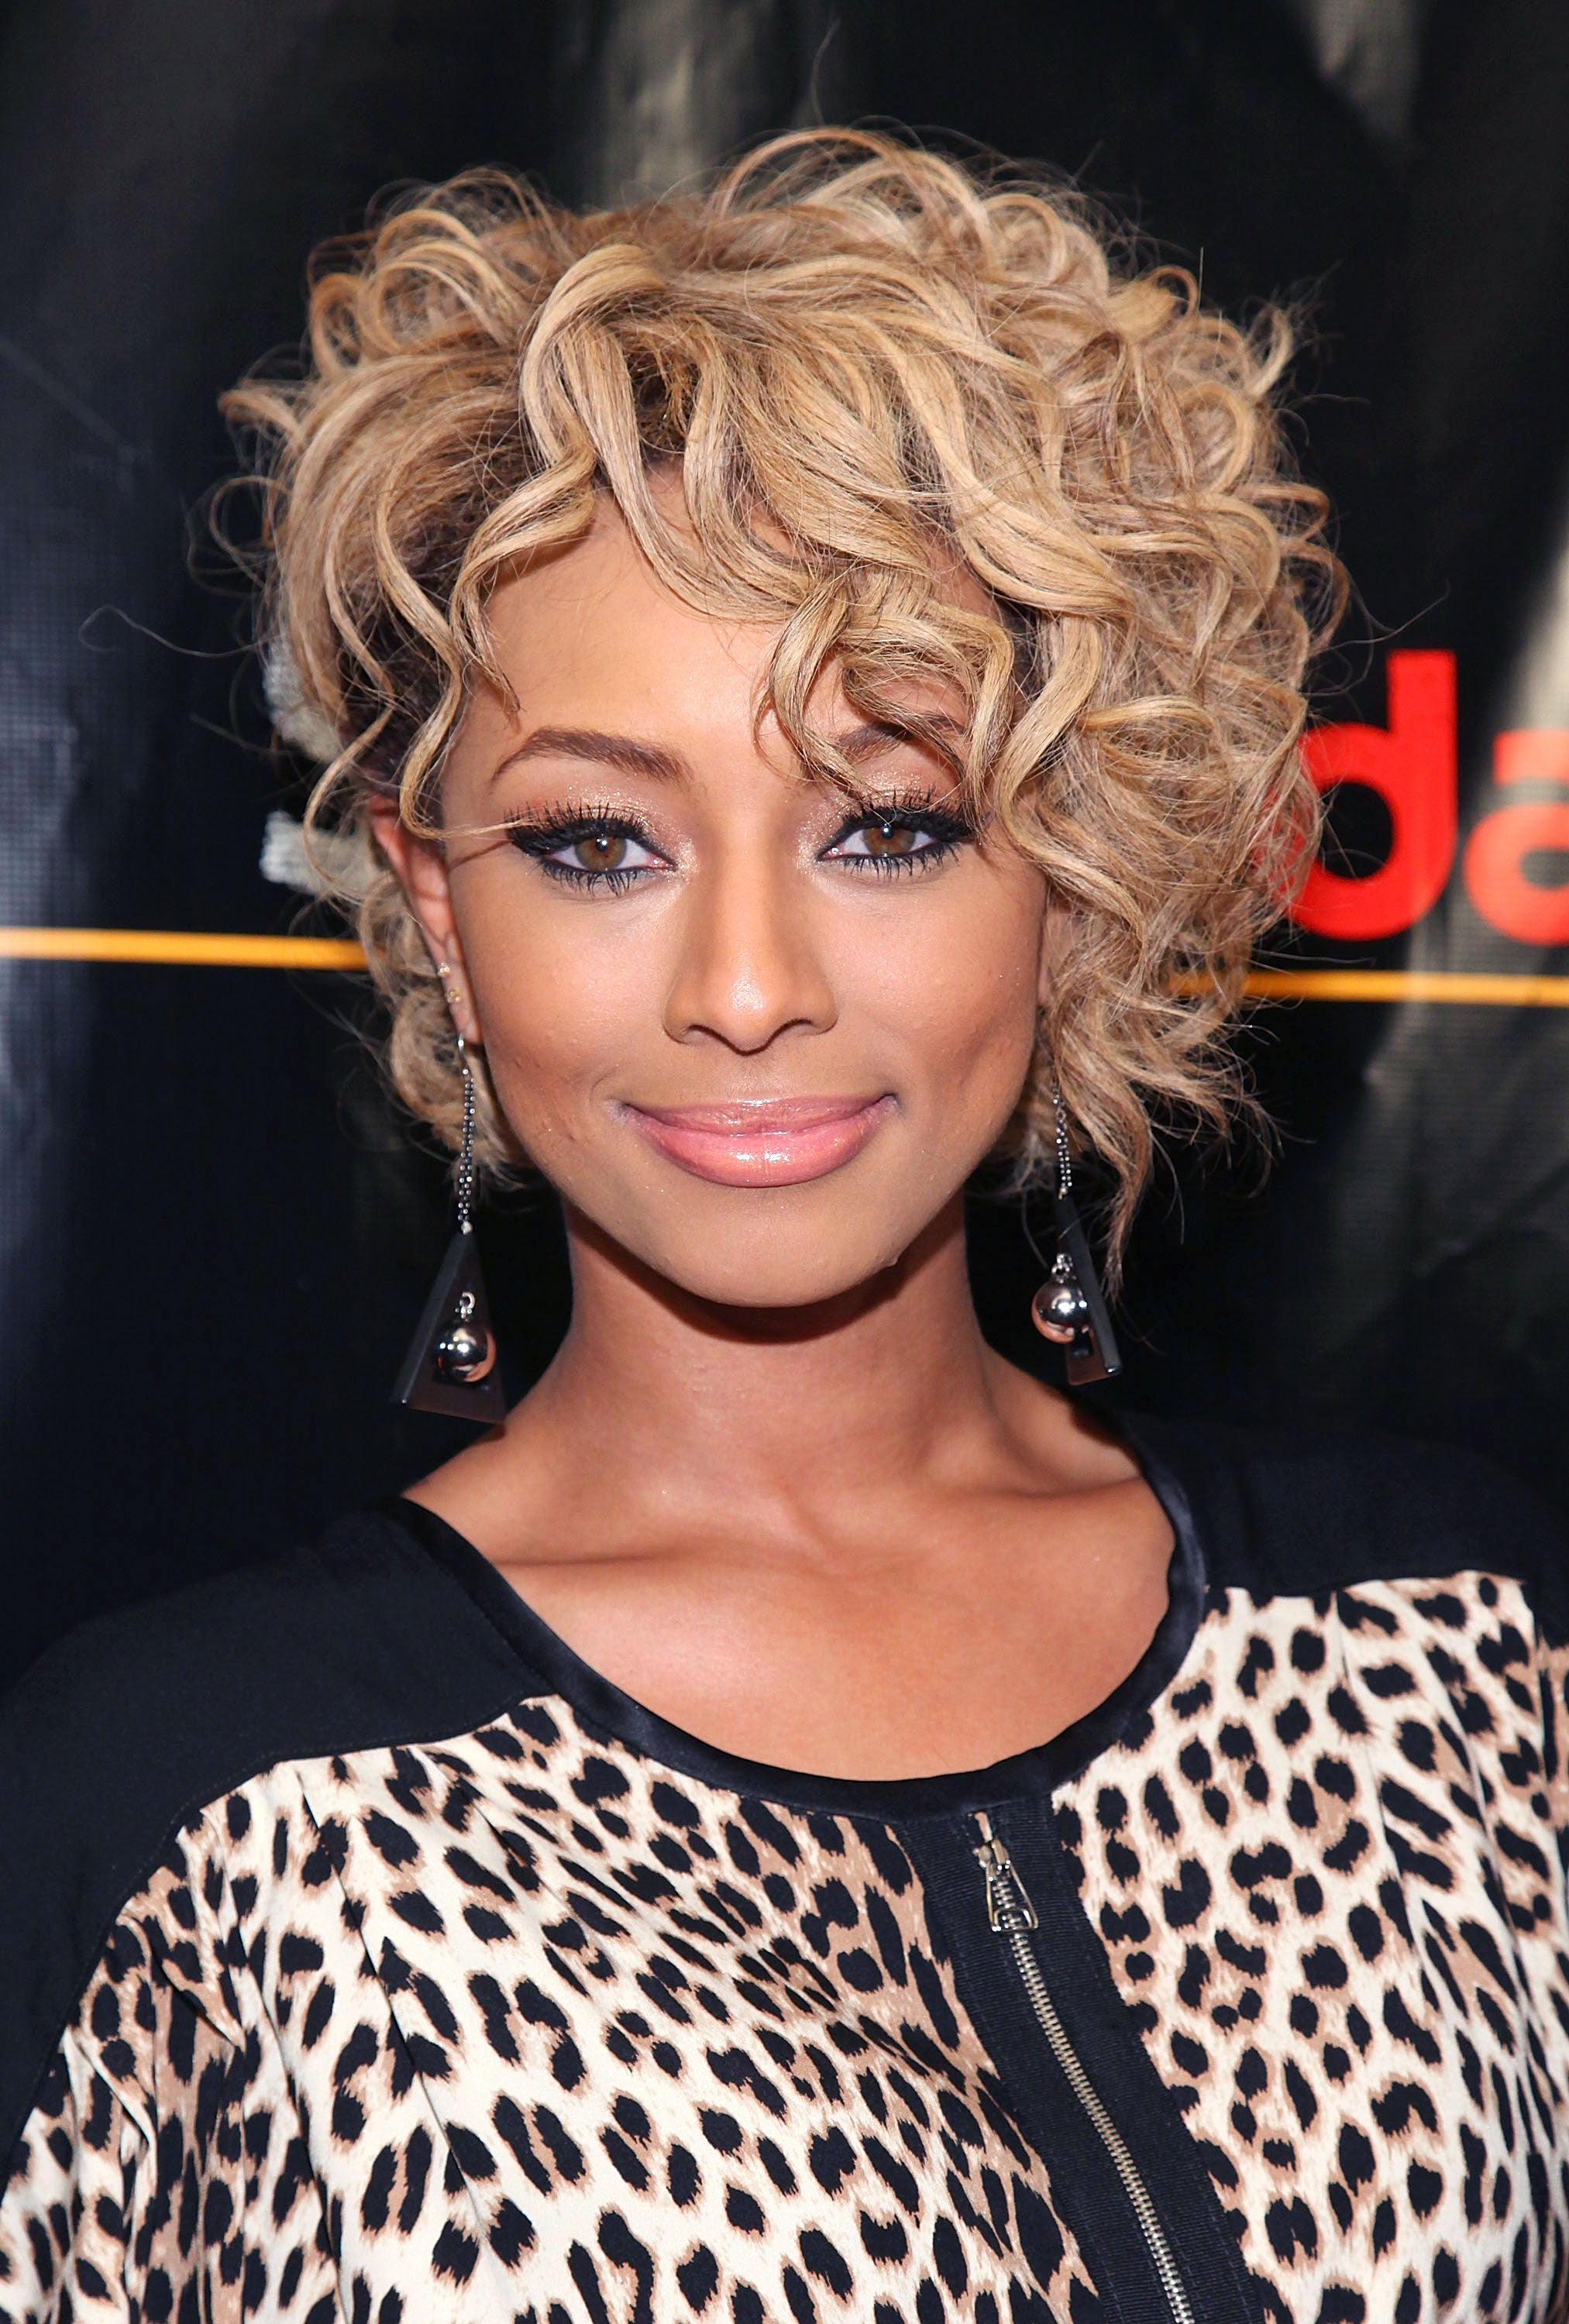 Fashion style Hilson Keri blonde hairstyles for lady